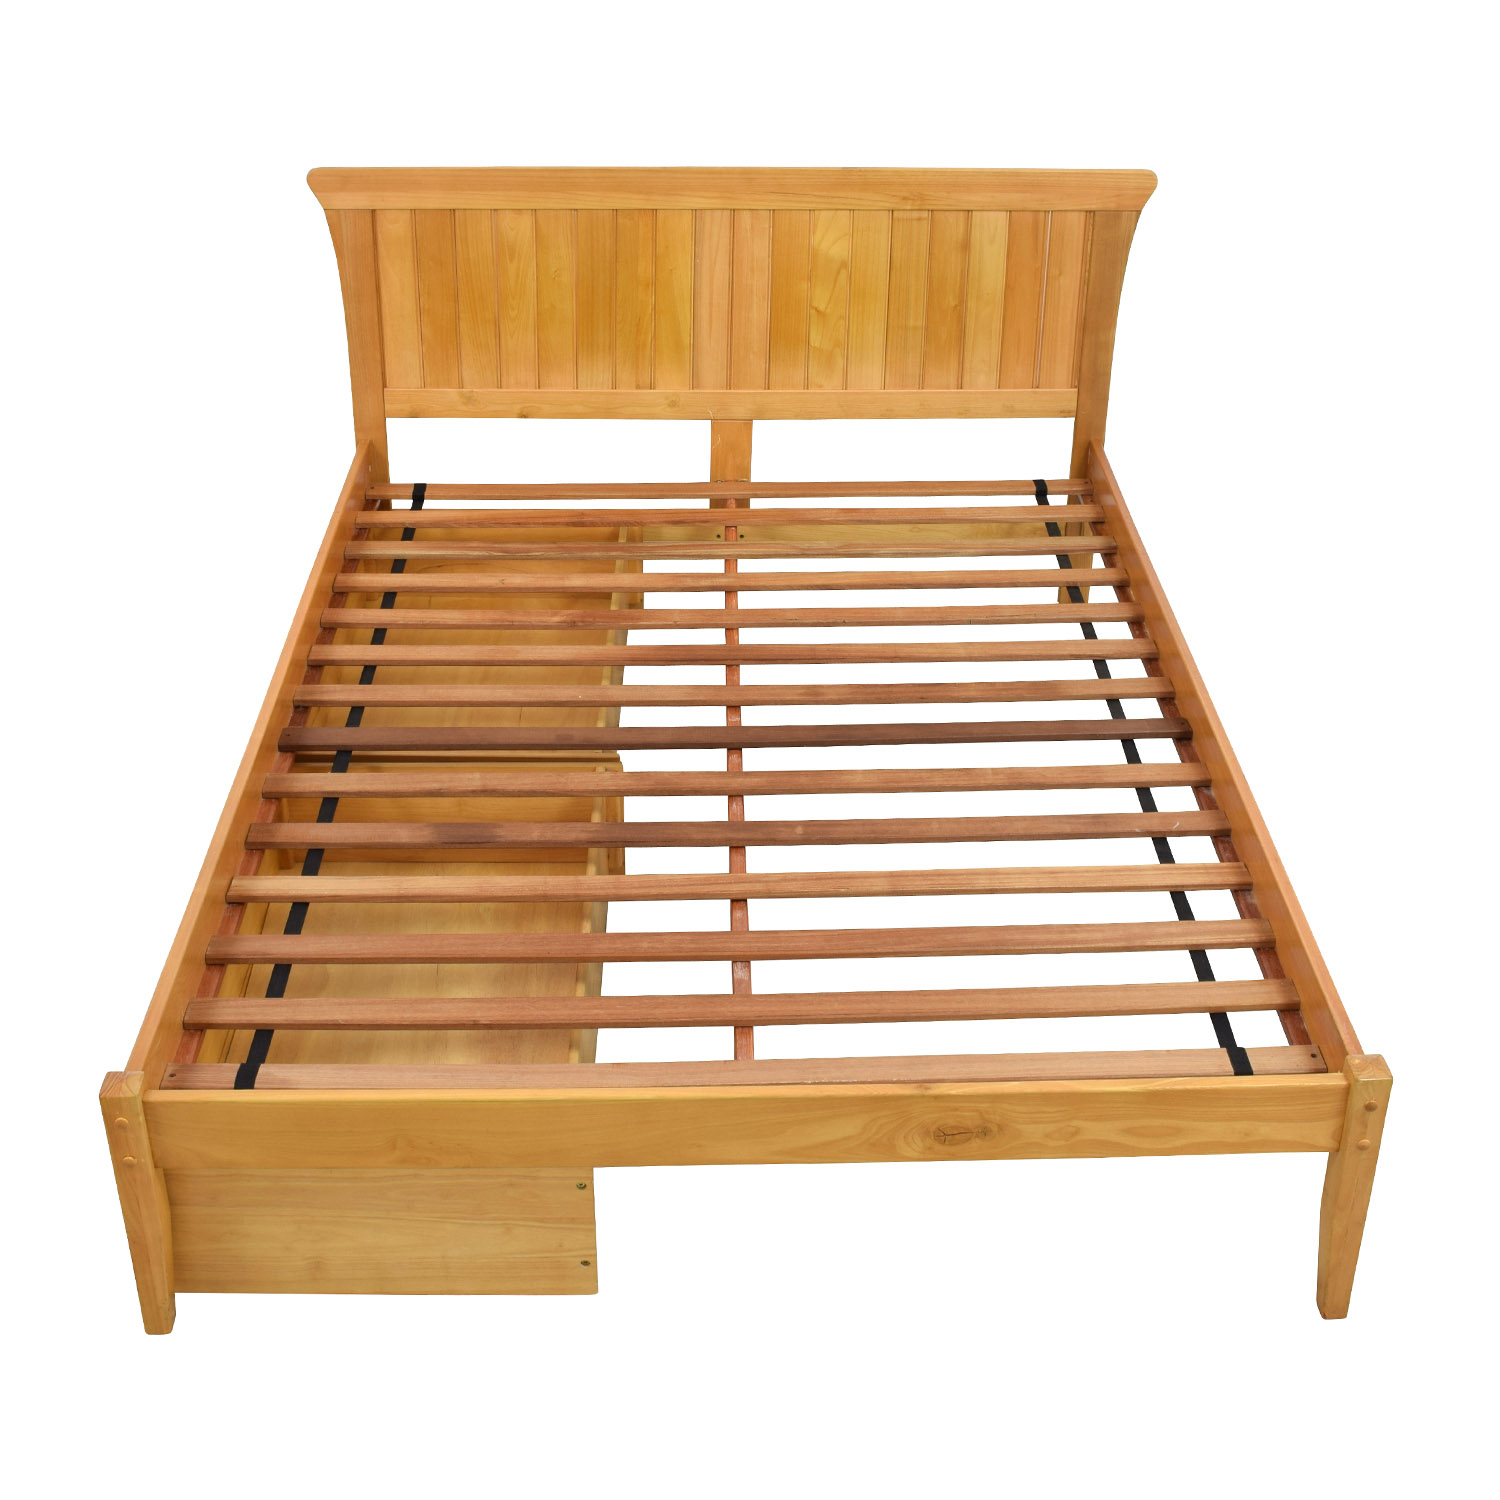 shop Solid Wood Bedframe with Storage online